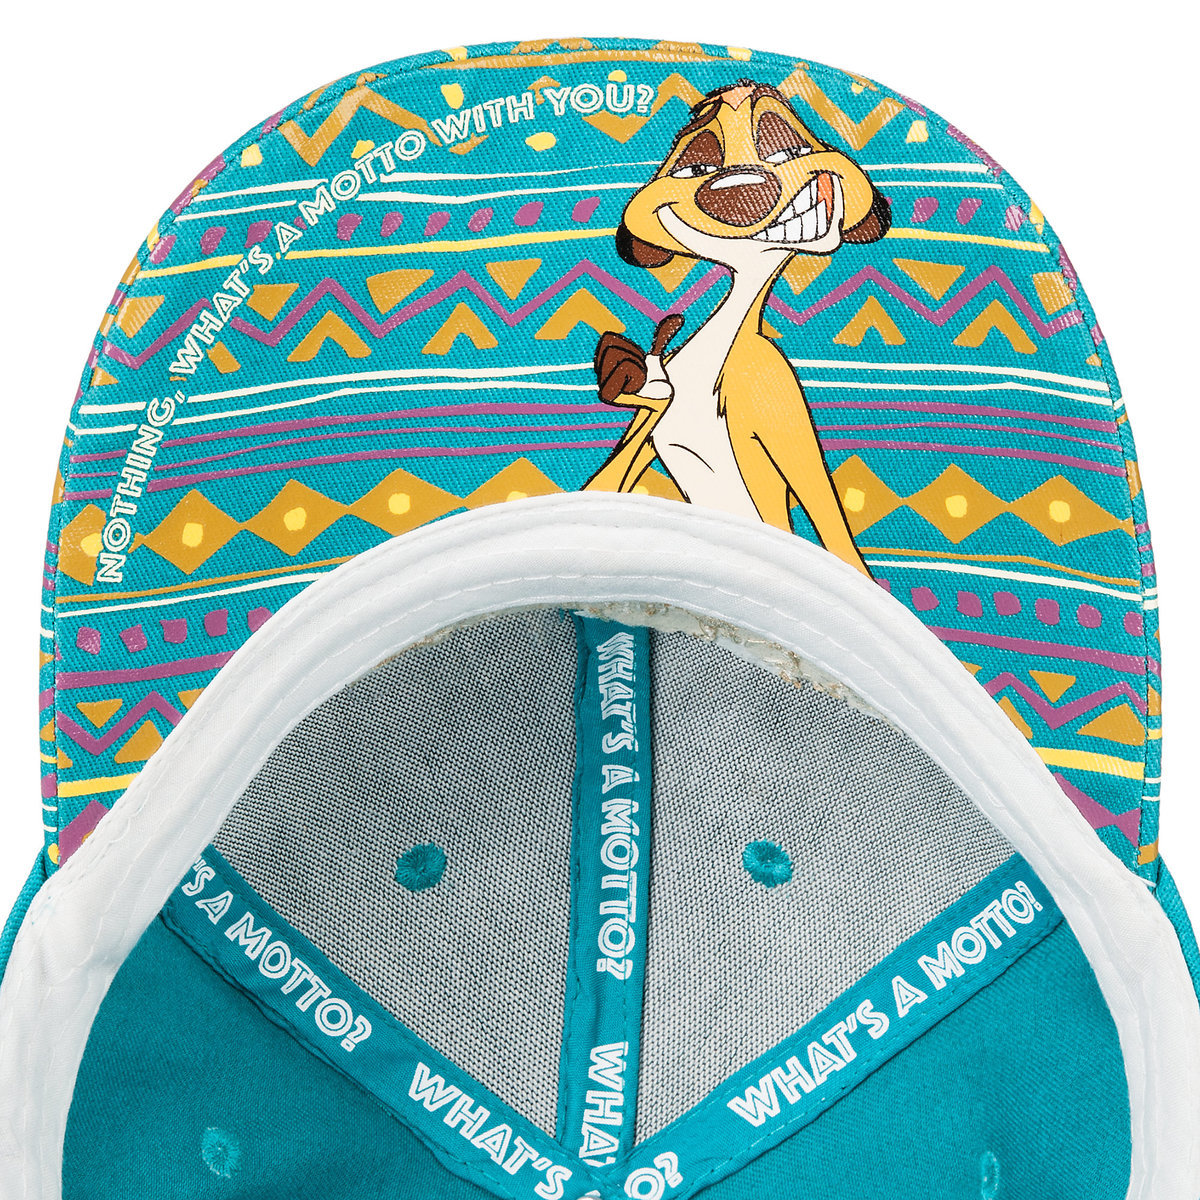 7feb7227624a7 Product Image of The Lion King Baseball Cap for Adults by Cakeworthy   4